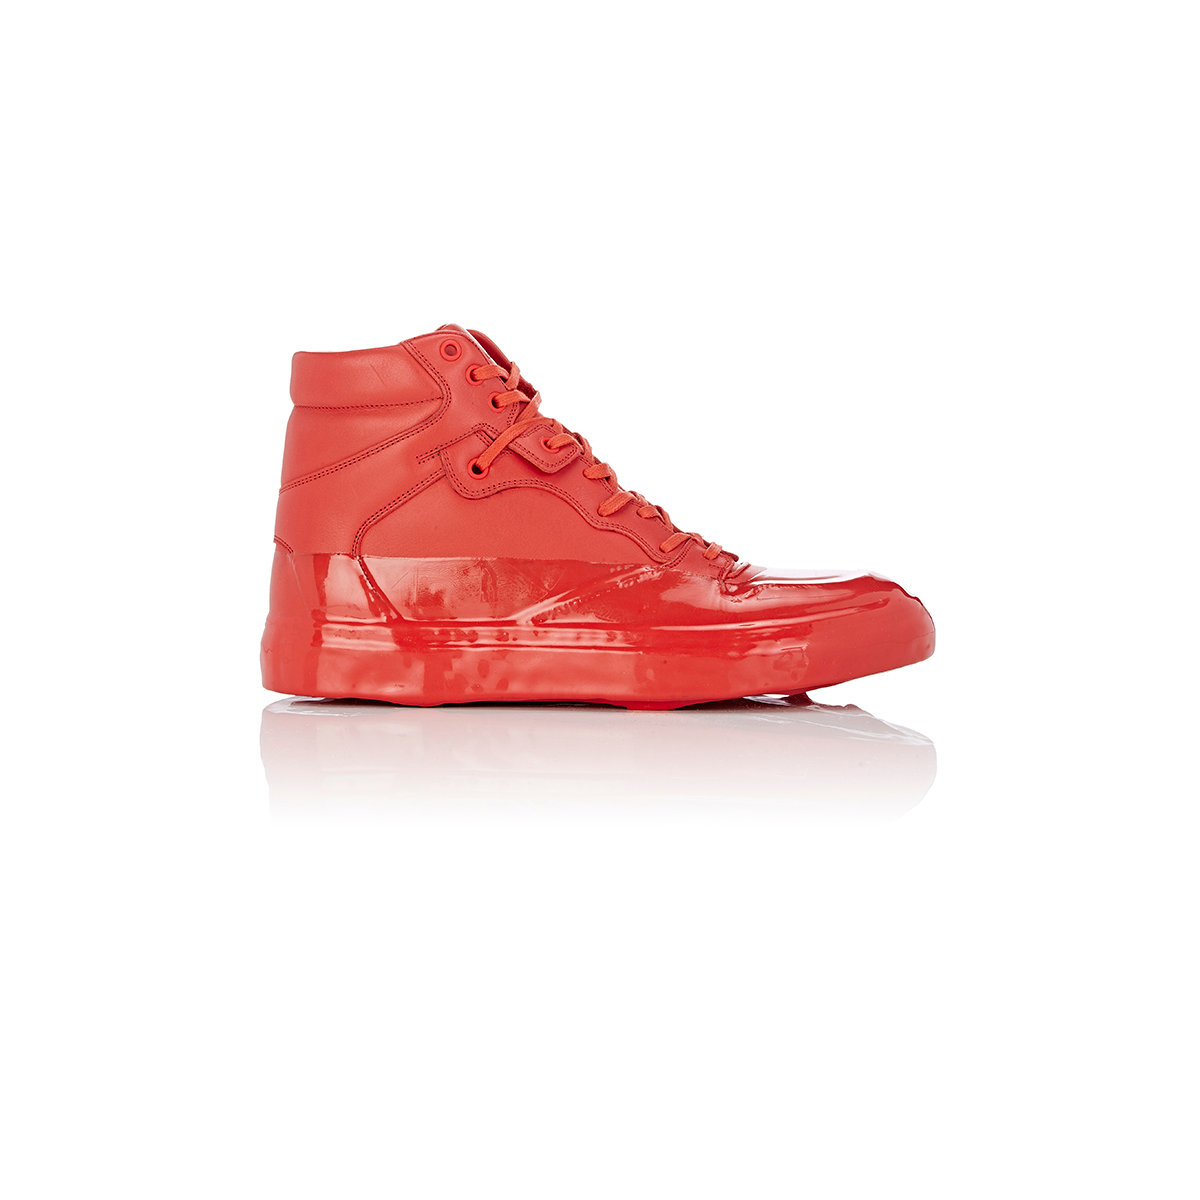 balenciaga patentdipped hightop sneakers in red for men